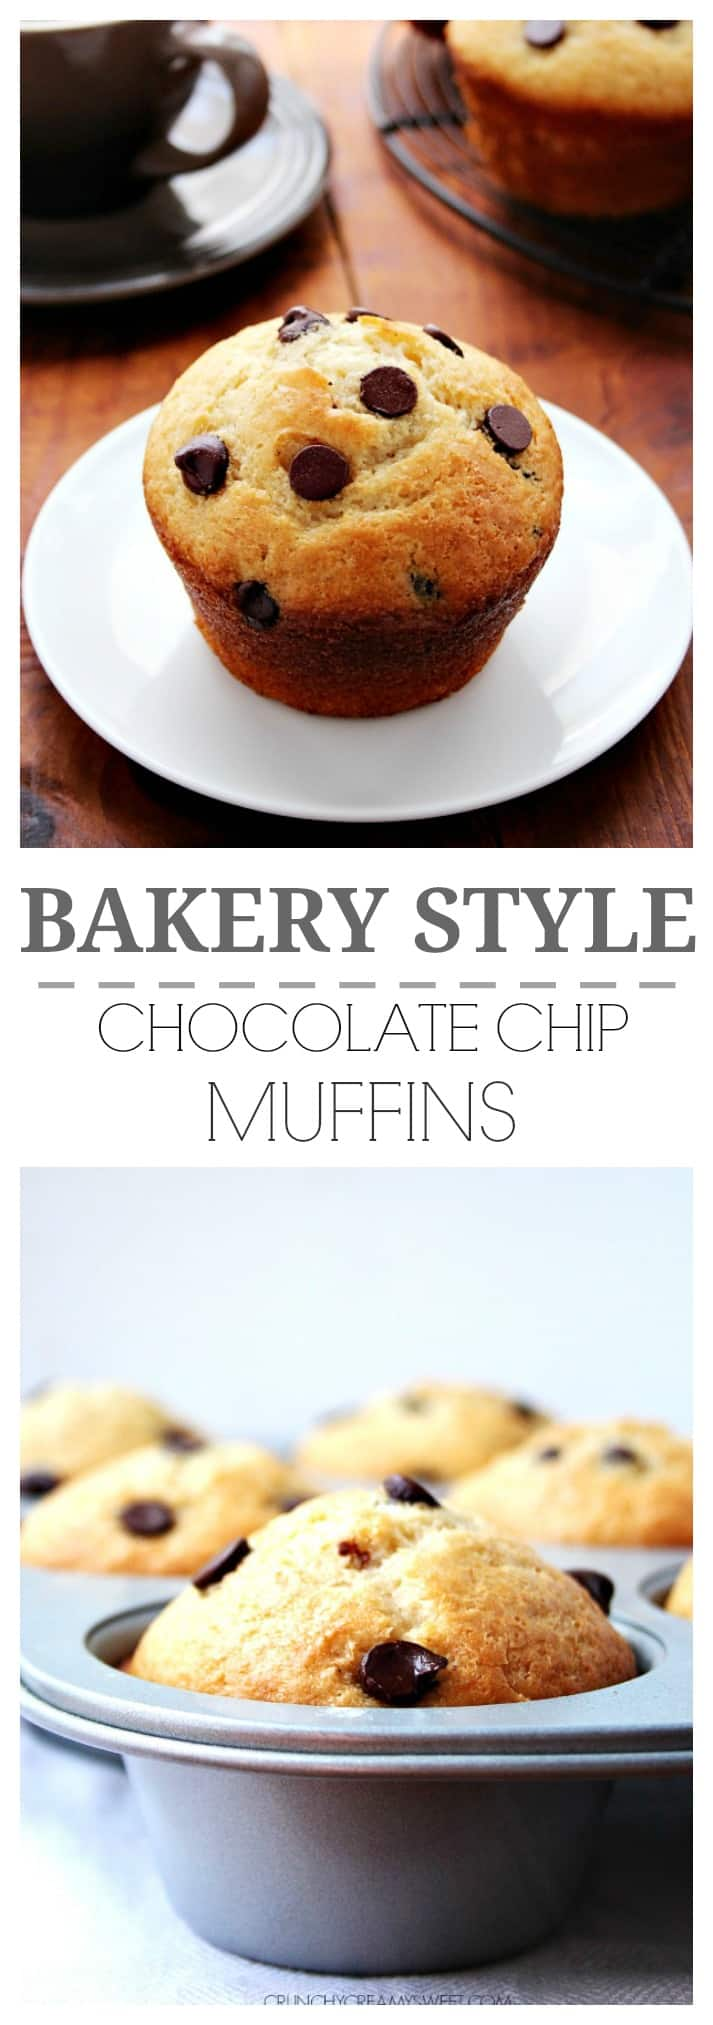 Perfect Bakery Style Chocolate Chip Muffins that you can bake at home ...